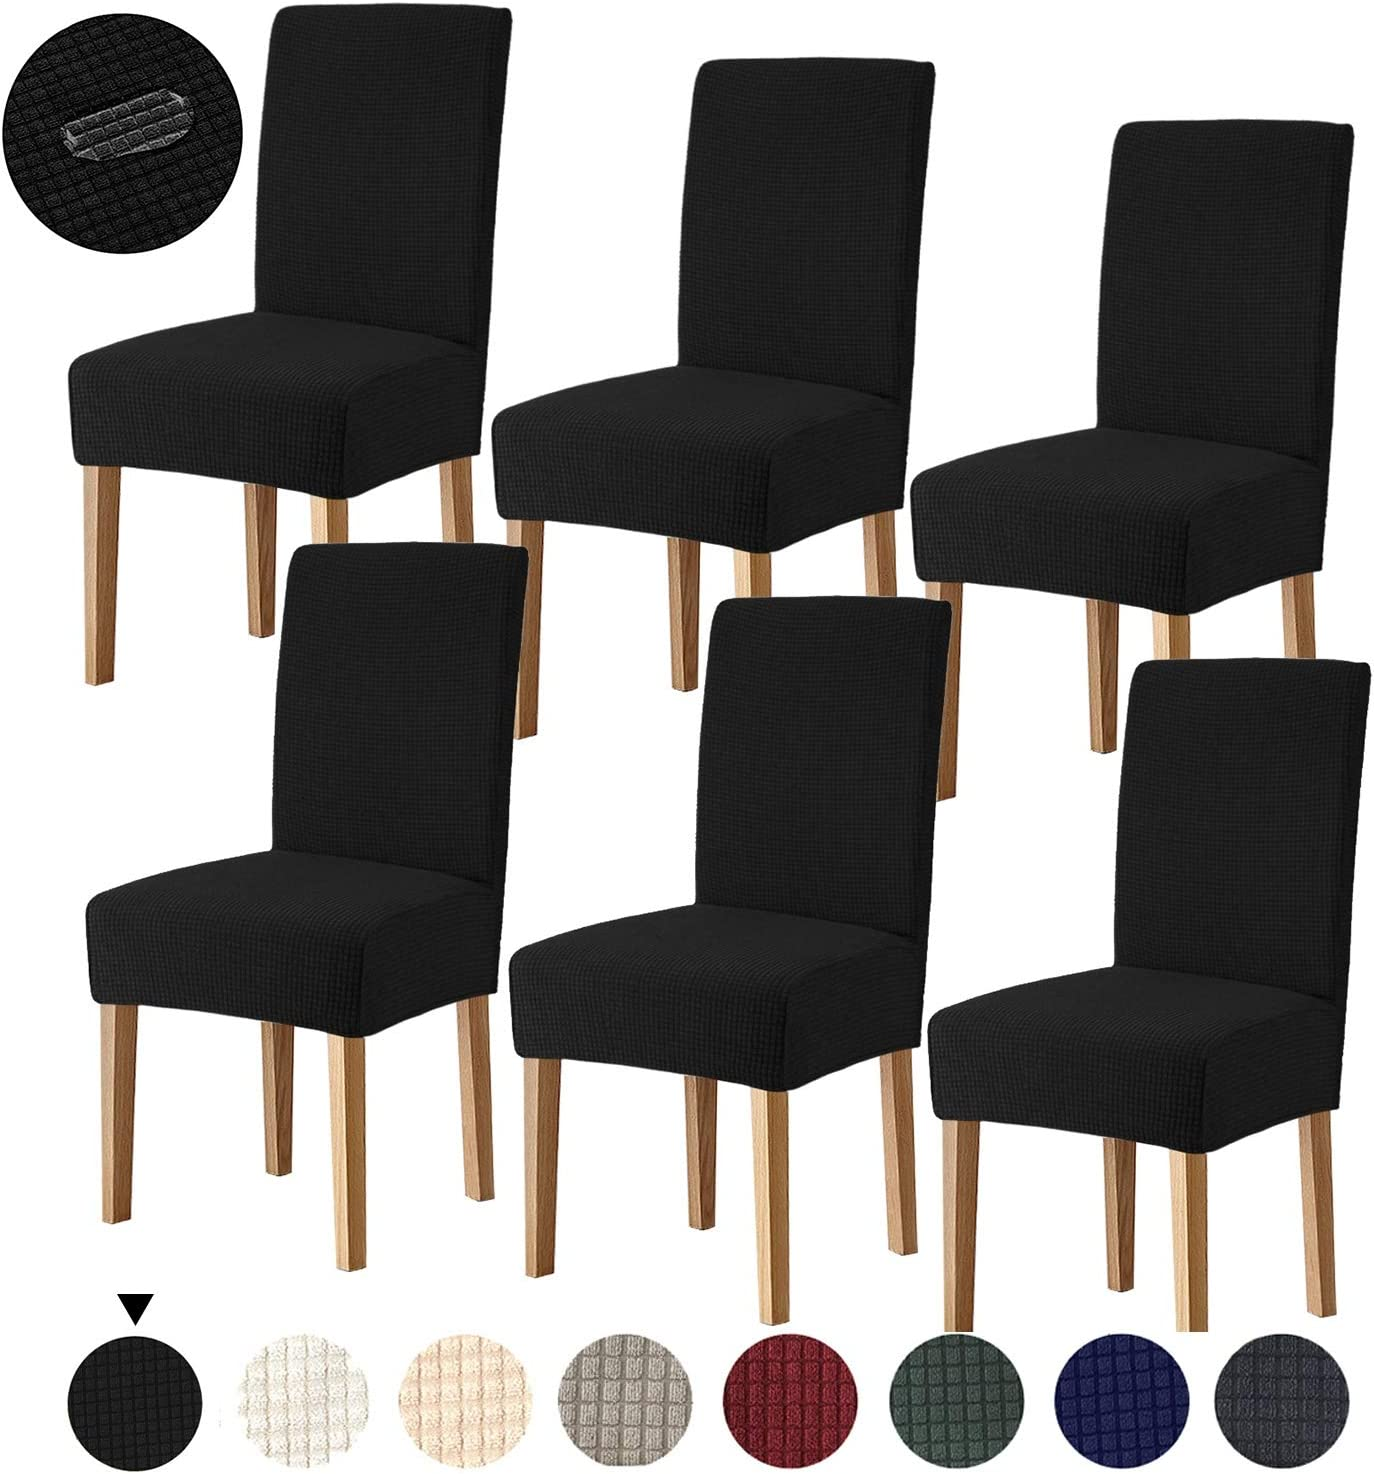 Joypea Time sale Dining Chair Covers Stretch Washable Removable No Spring new work Spandex